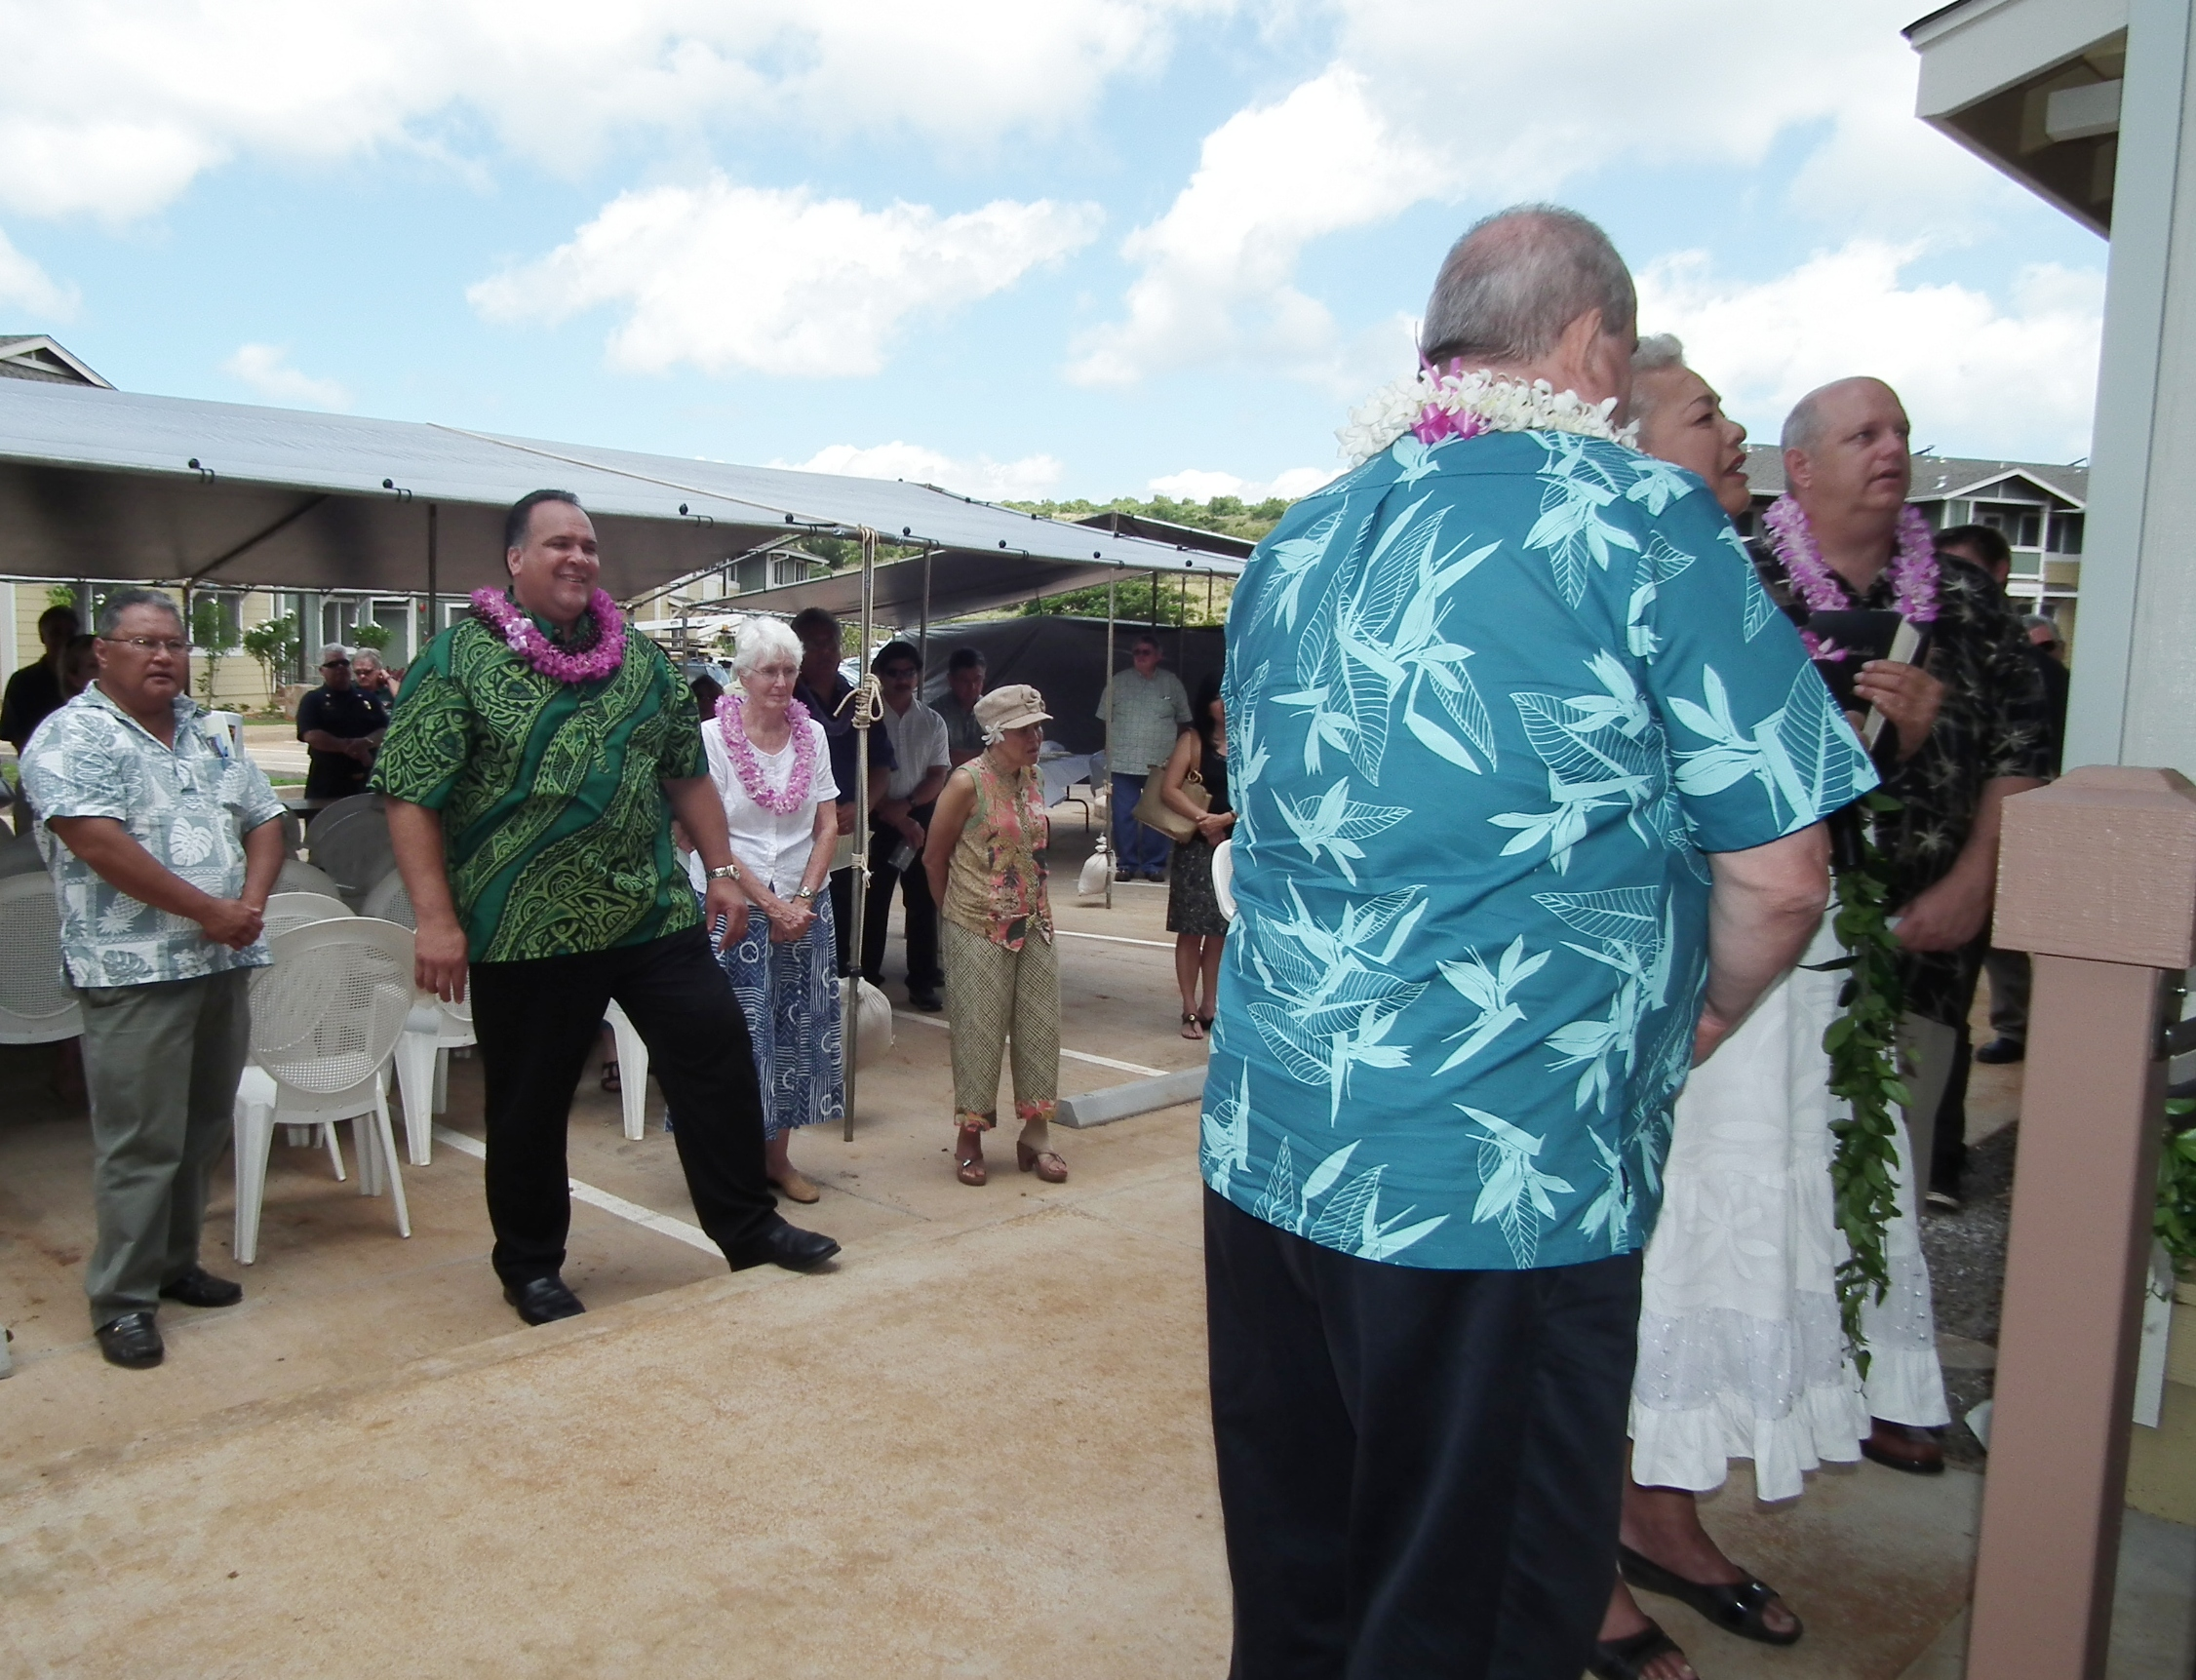 A blessing was held marking the completion of Pa'anau Village phase two. Attendees included (foreground left to right): Randy Francisco, Kaua'i Chamber of Commerce president; Mayor Bernard Carvalho, Jr.; a charter resident; Delia Valentin, Kaua'i Housing Development Corp. board member; Kaua'i County Council Chair Jay Furfaro; Rev. Ipo Kahaunaele-Ferreira; and Mark Chandler with the U.S. Department of Housing and Urban Development.